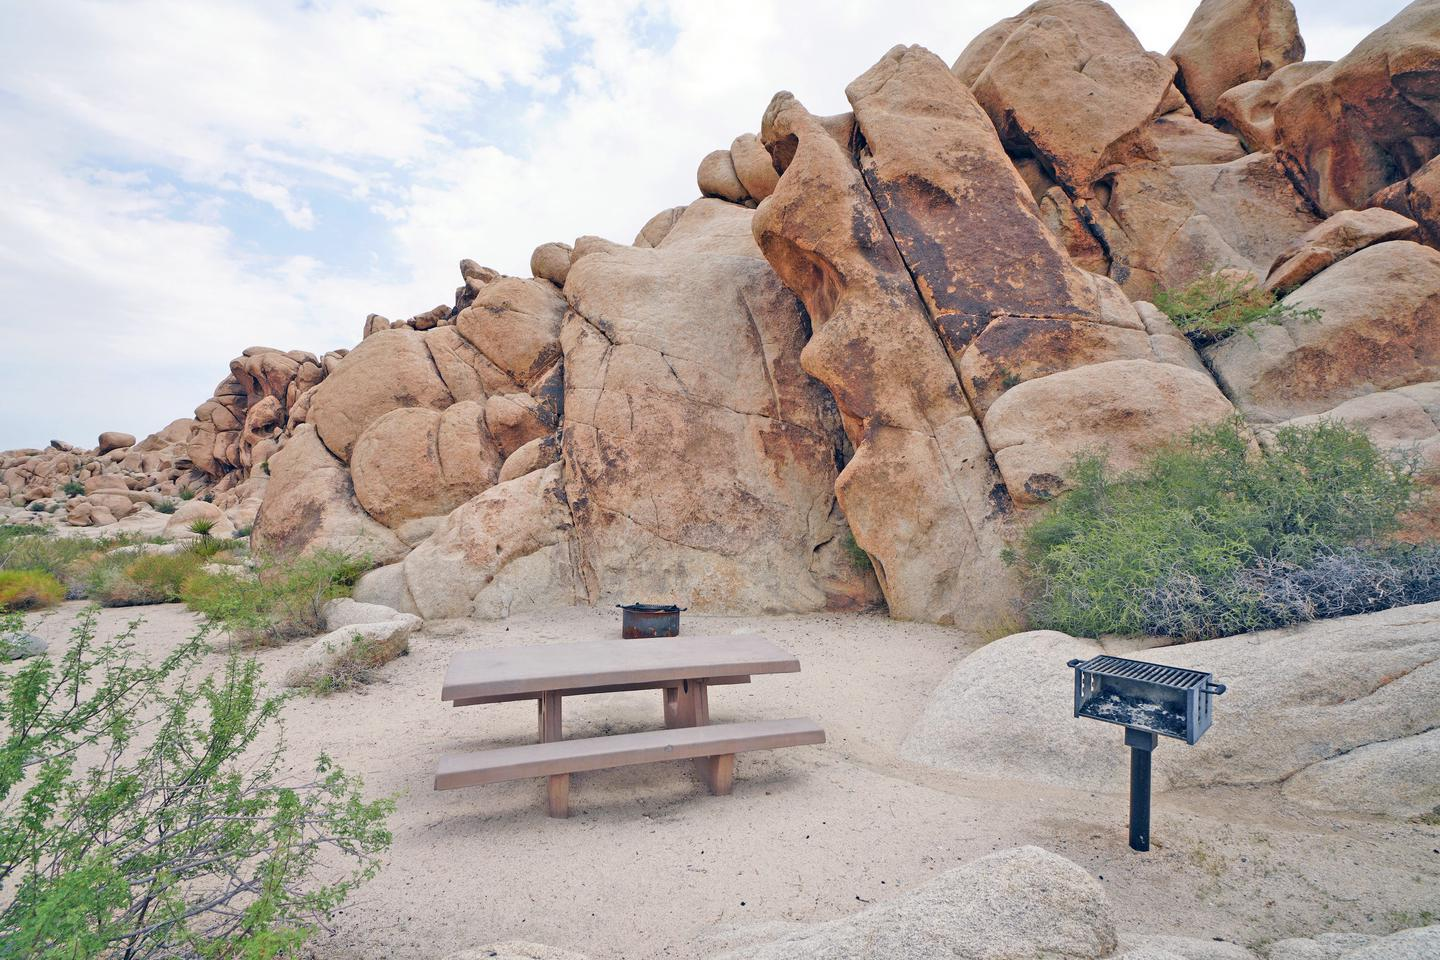 Campsite  with picnic table surrounded by boulders and green plantsCampsite.